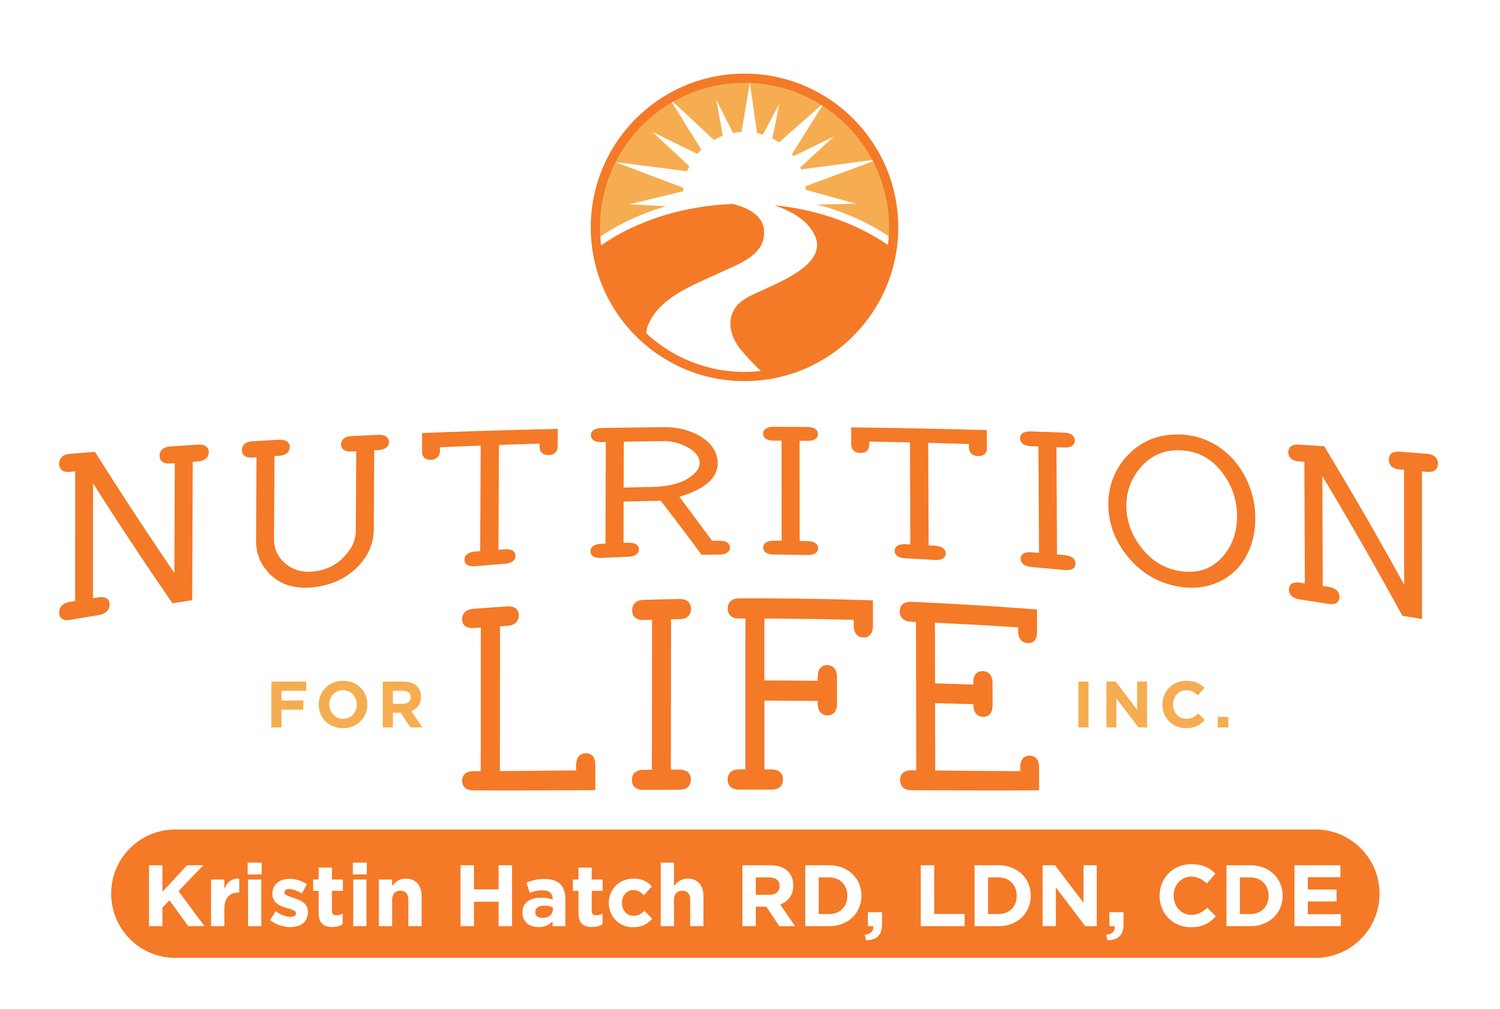 Nutrition for Life Inc.